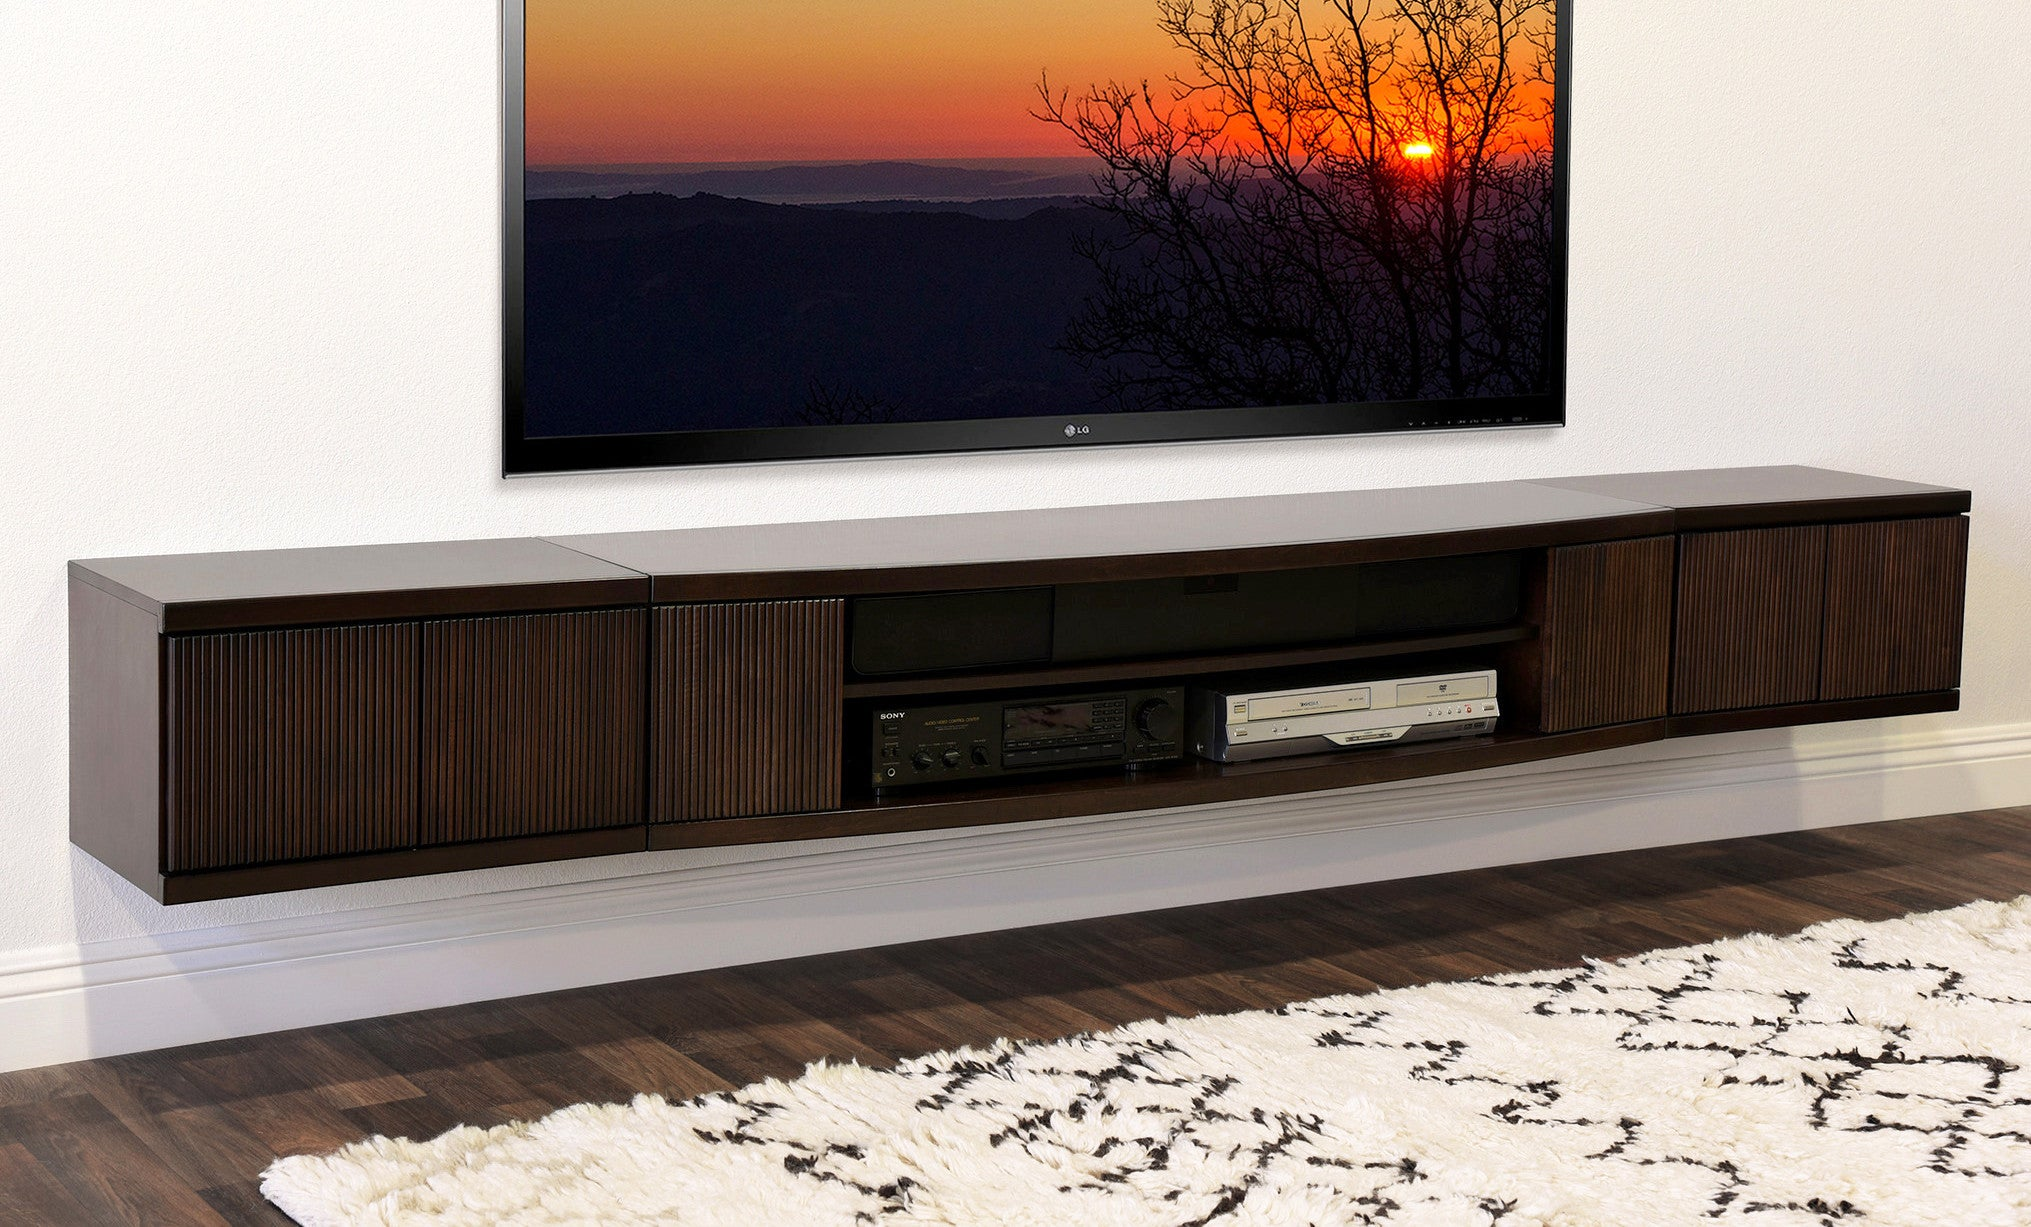 Floating Wall Mount Entertainment Center TV Stand   Curve   3 Piece    Espresso